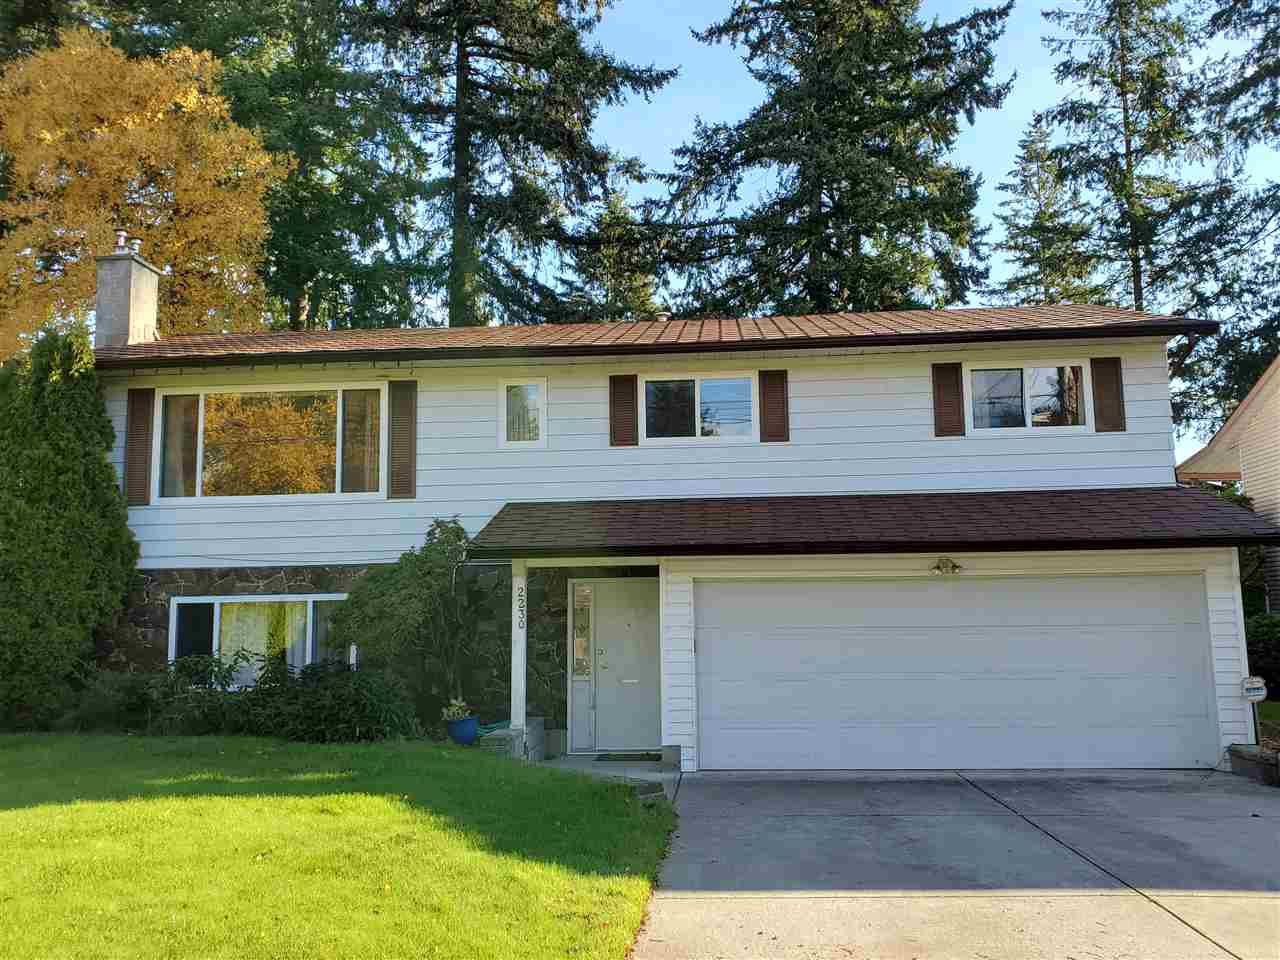 Main Photo: 2230 153 Street in Surrey: King George Corridor House for sale (South Surrey White Rock)  : MLS®# R2513808